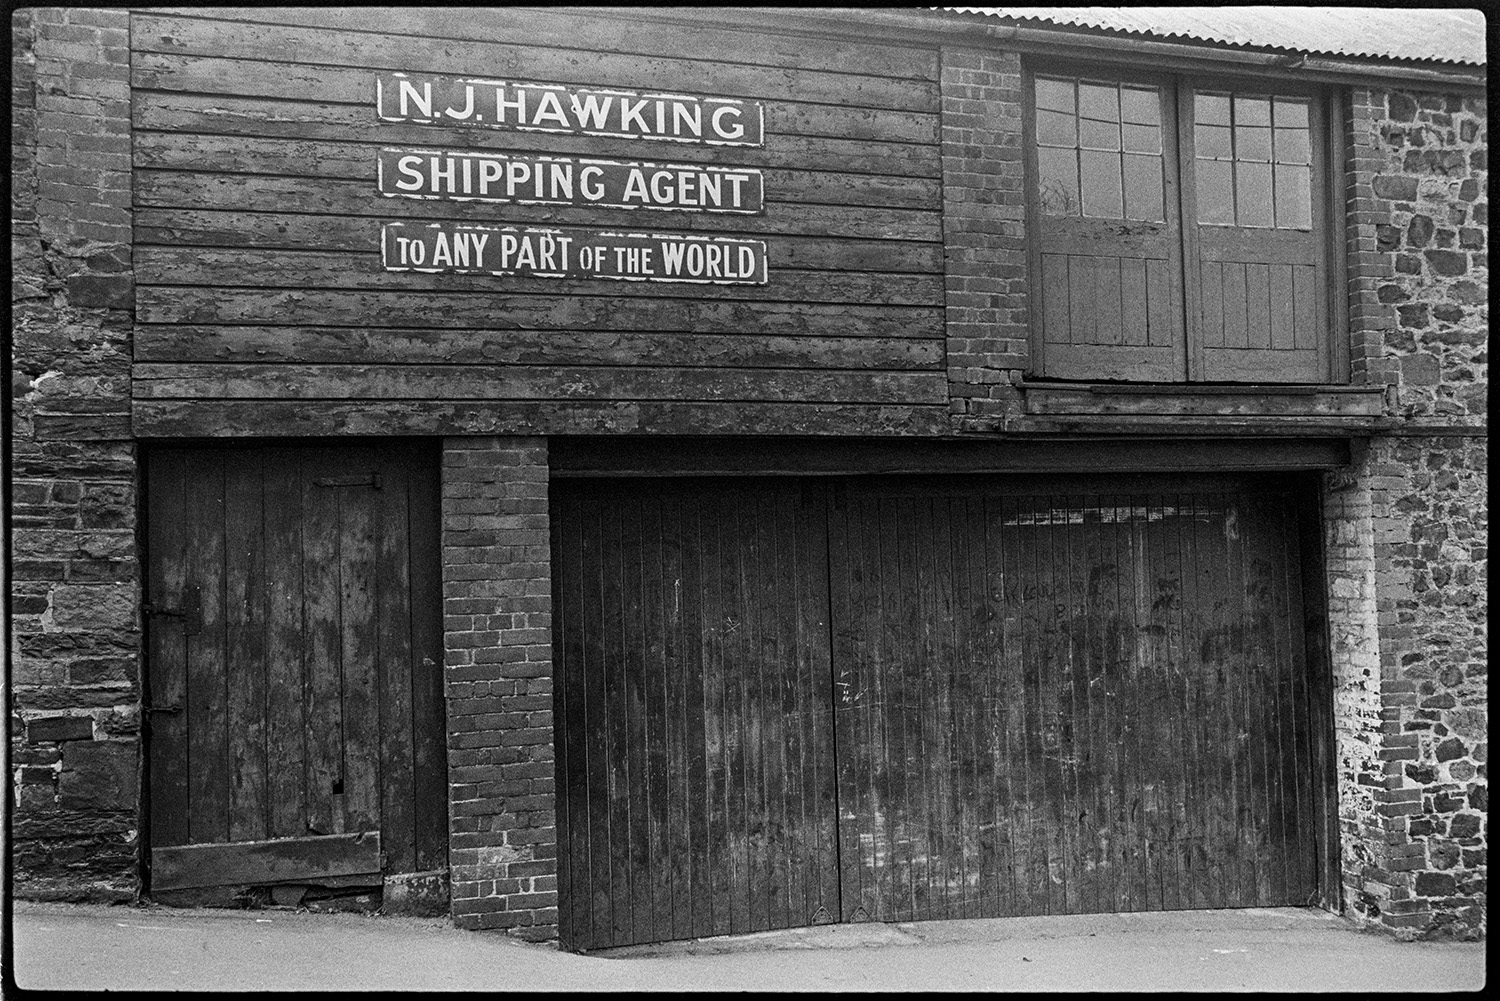 The exterior of N J Hawking, Shipping Agent.